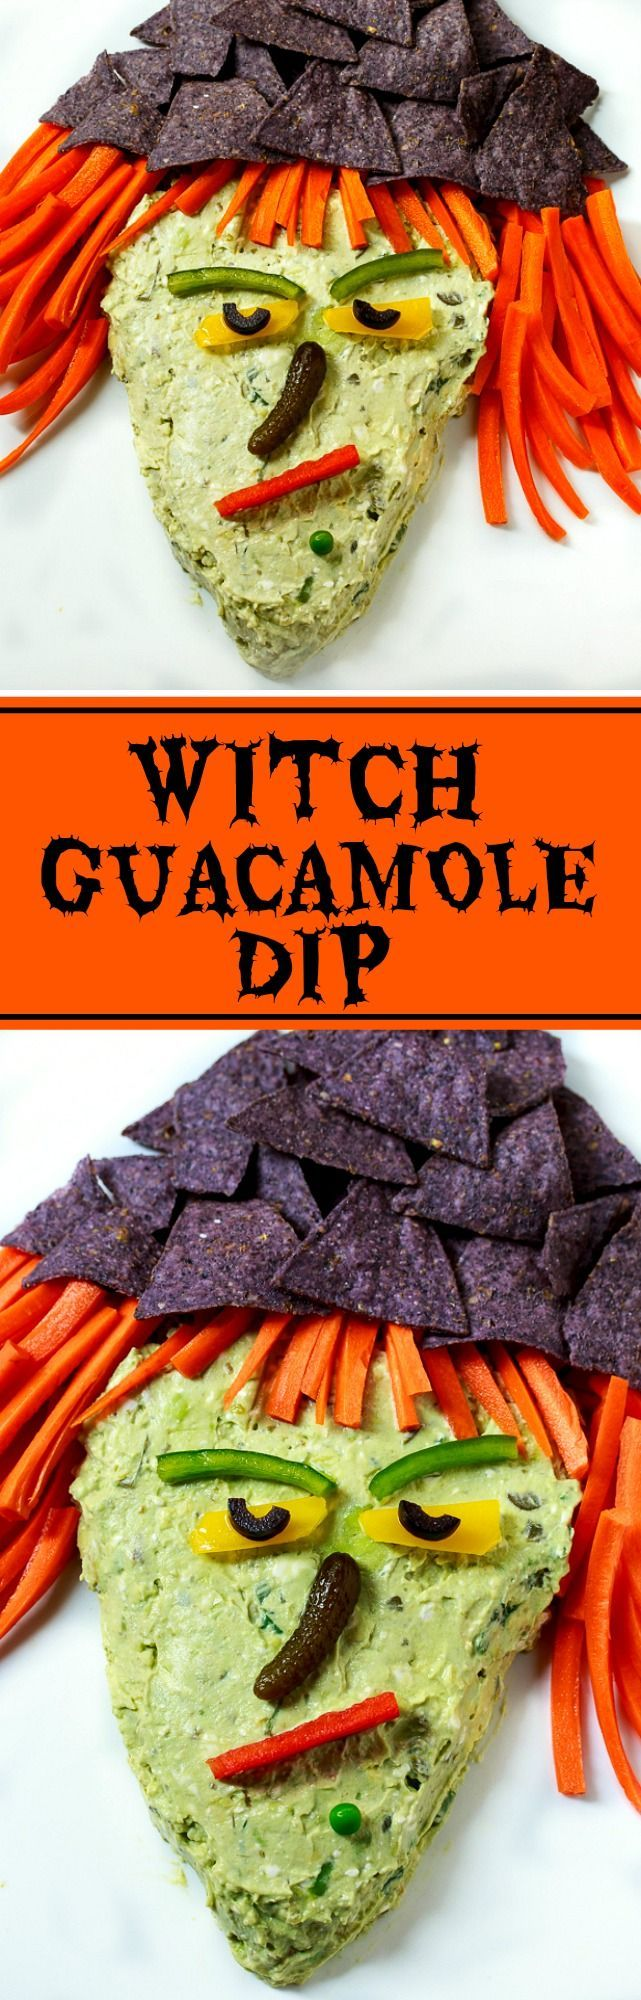 Witch Guacamole Dip for your next Halloween party. Tastes great and easy to make!